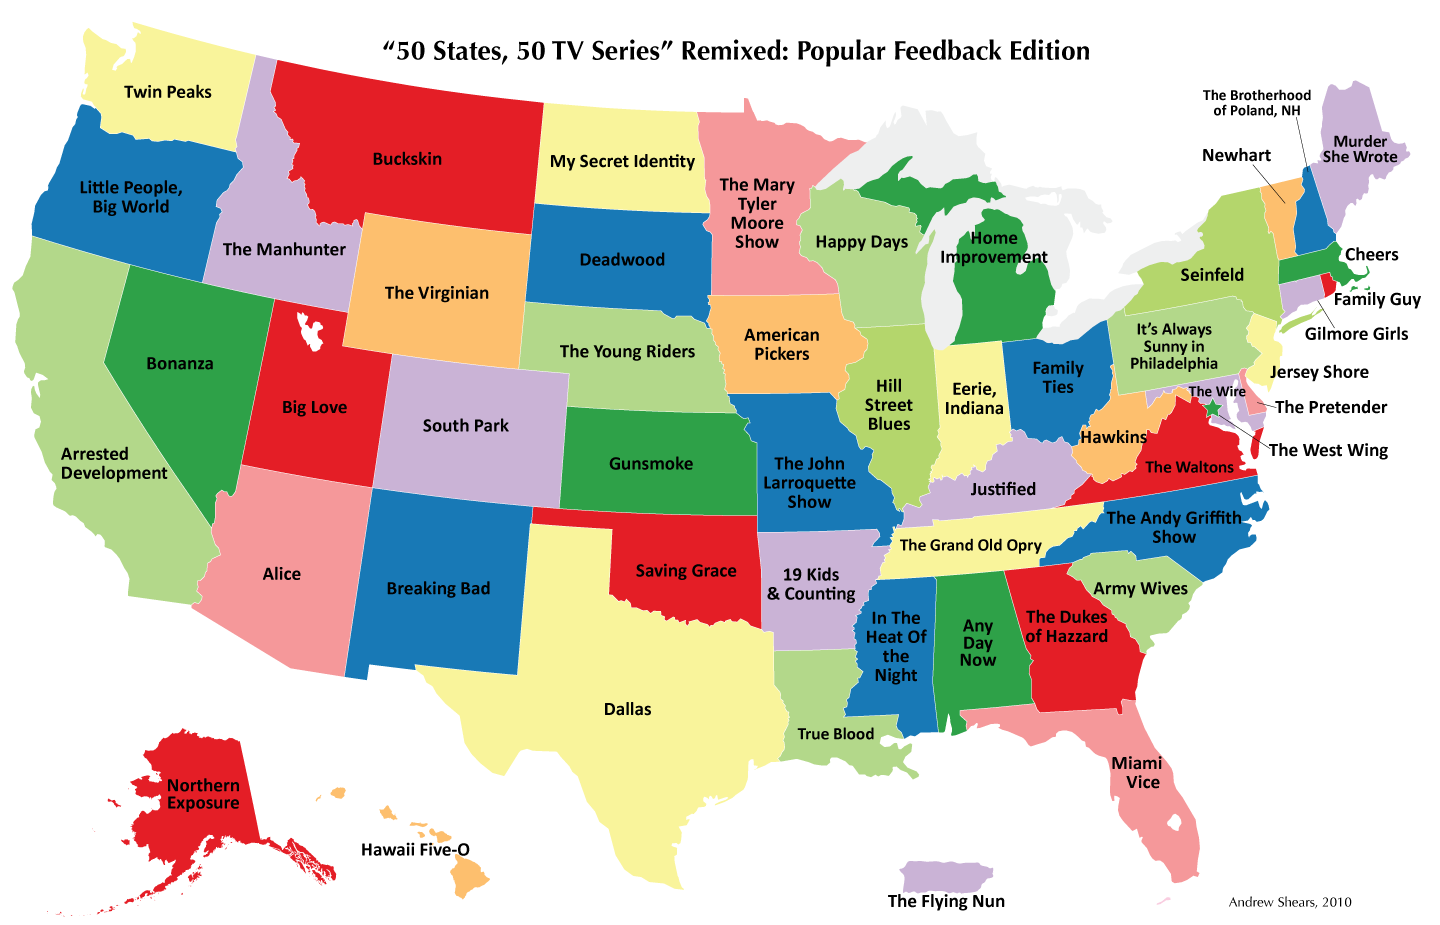 Tech Media Tainment U S Maps Showing Movie And Tv Show